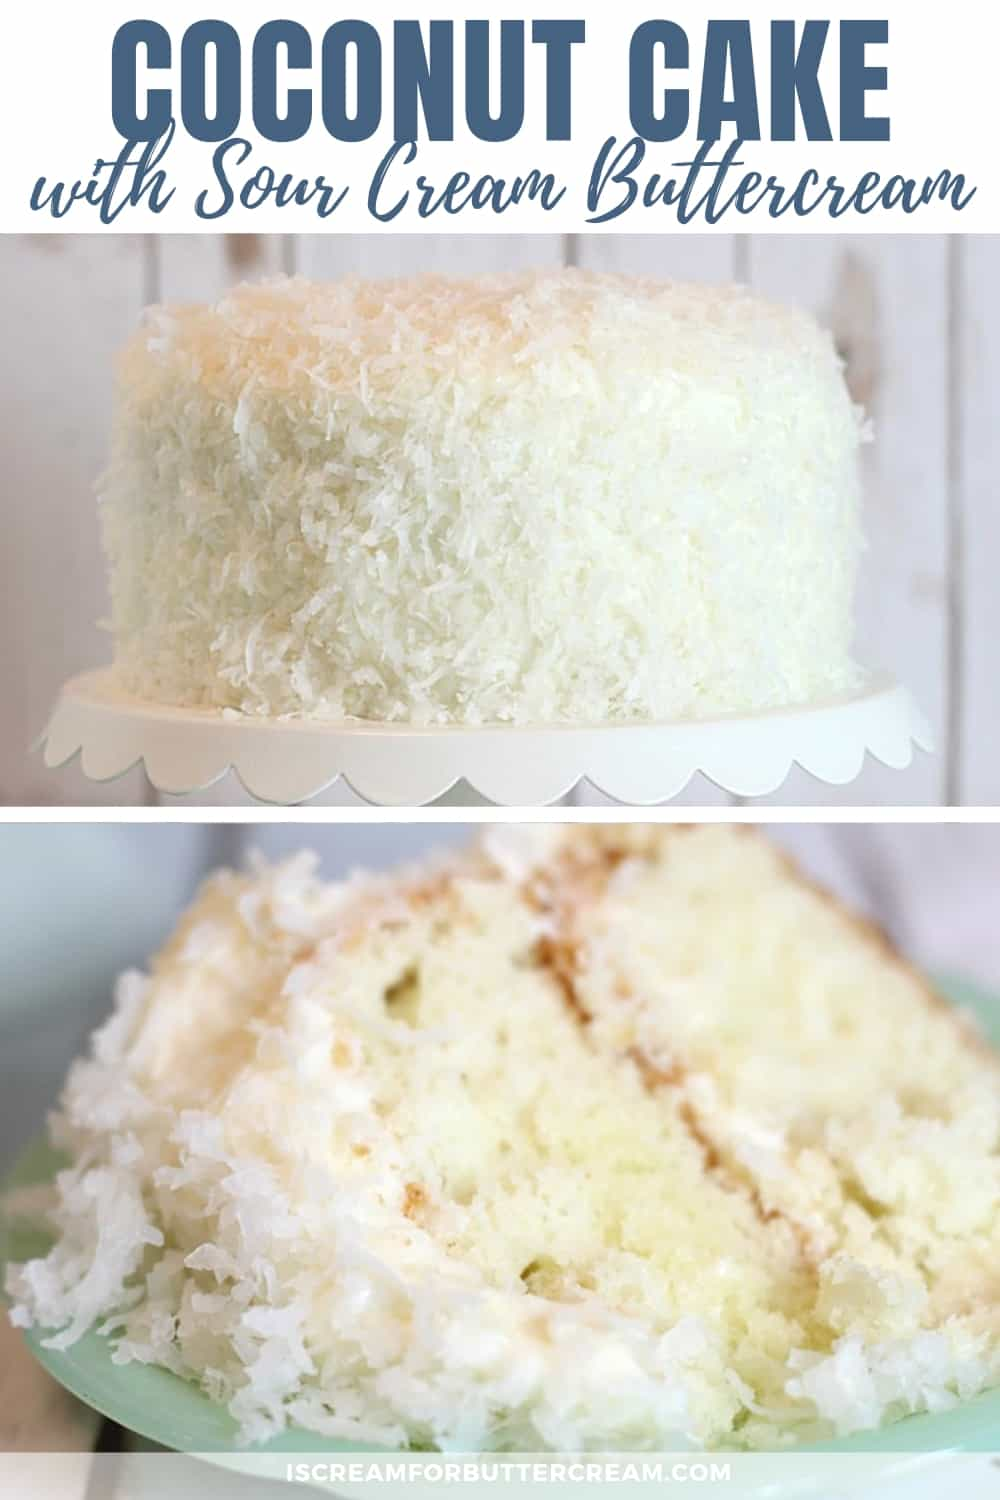 Coconut Cake New Pinterest Graphic 1